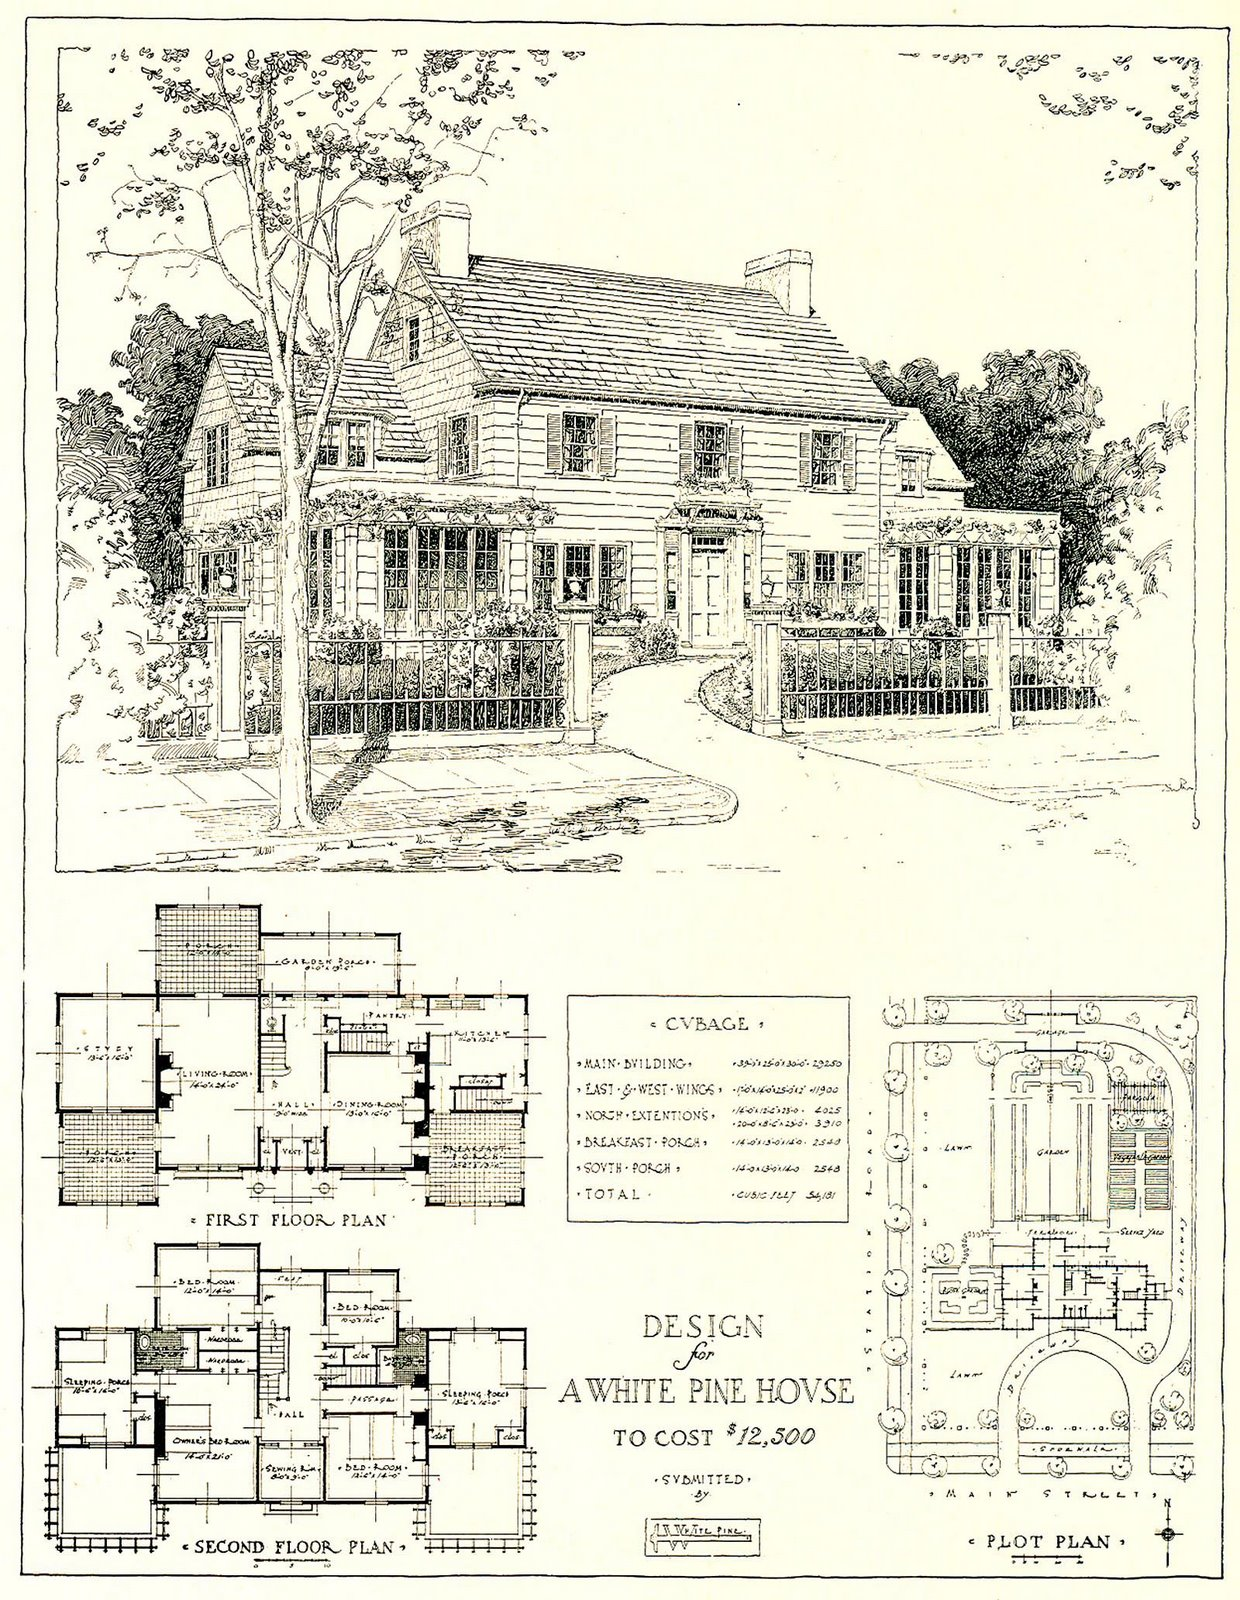 1917 architectural design for a 12 500 house content in Architectural house plans